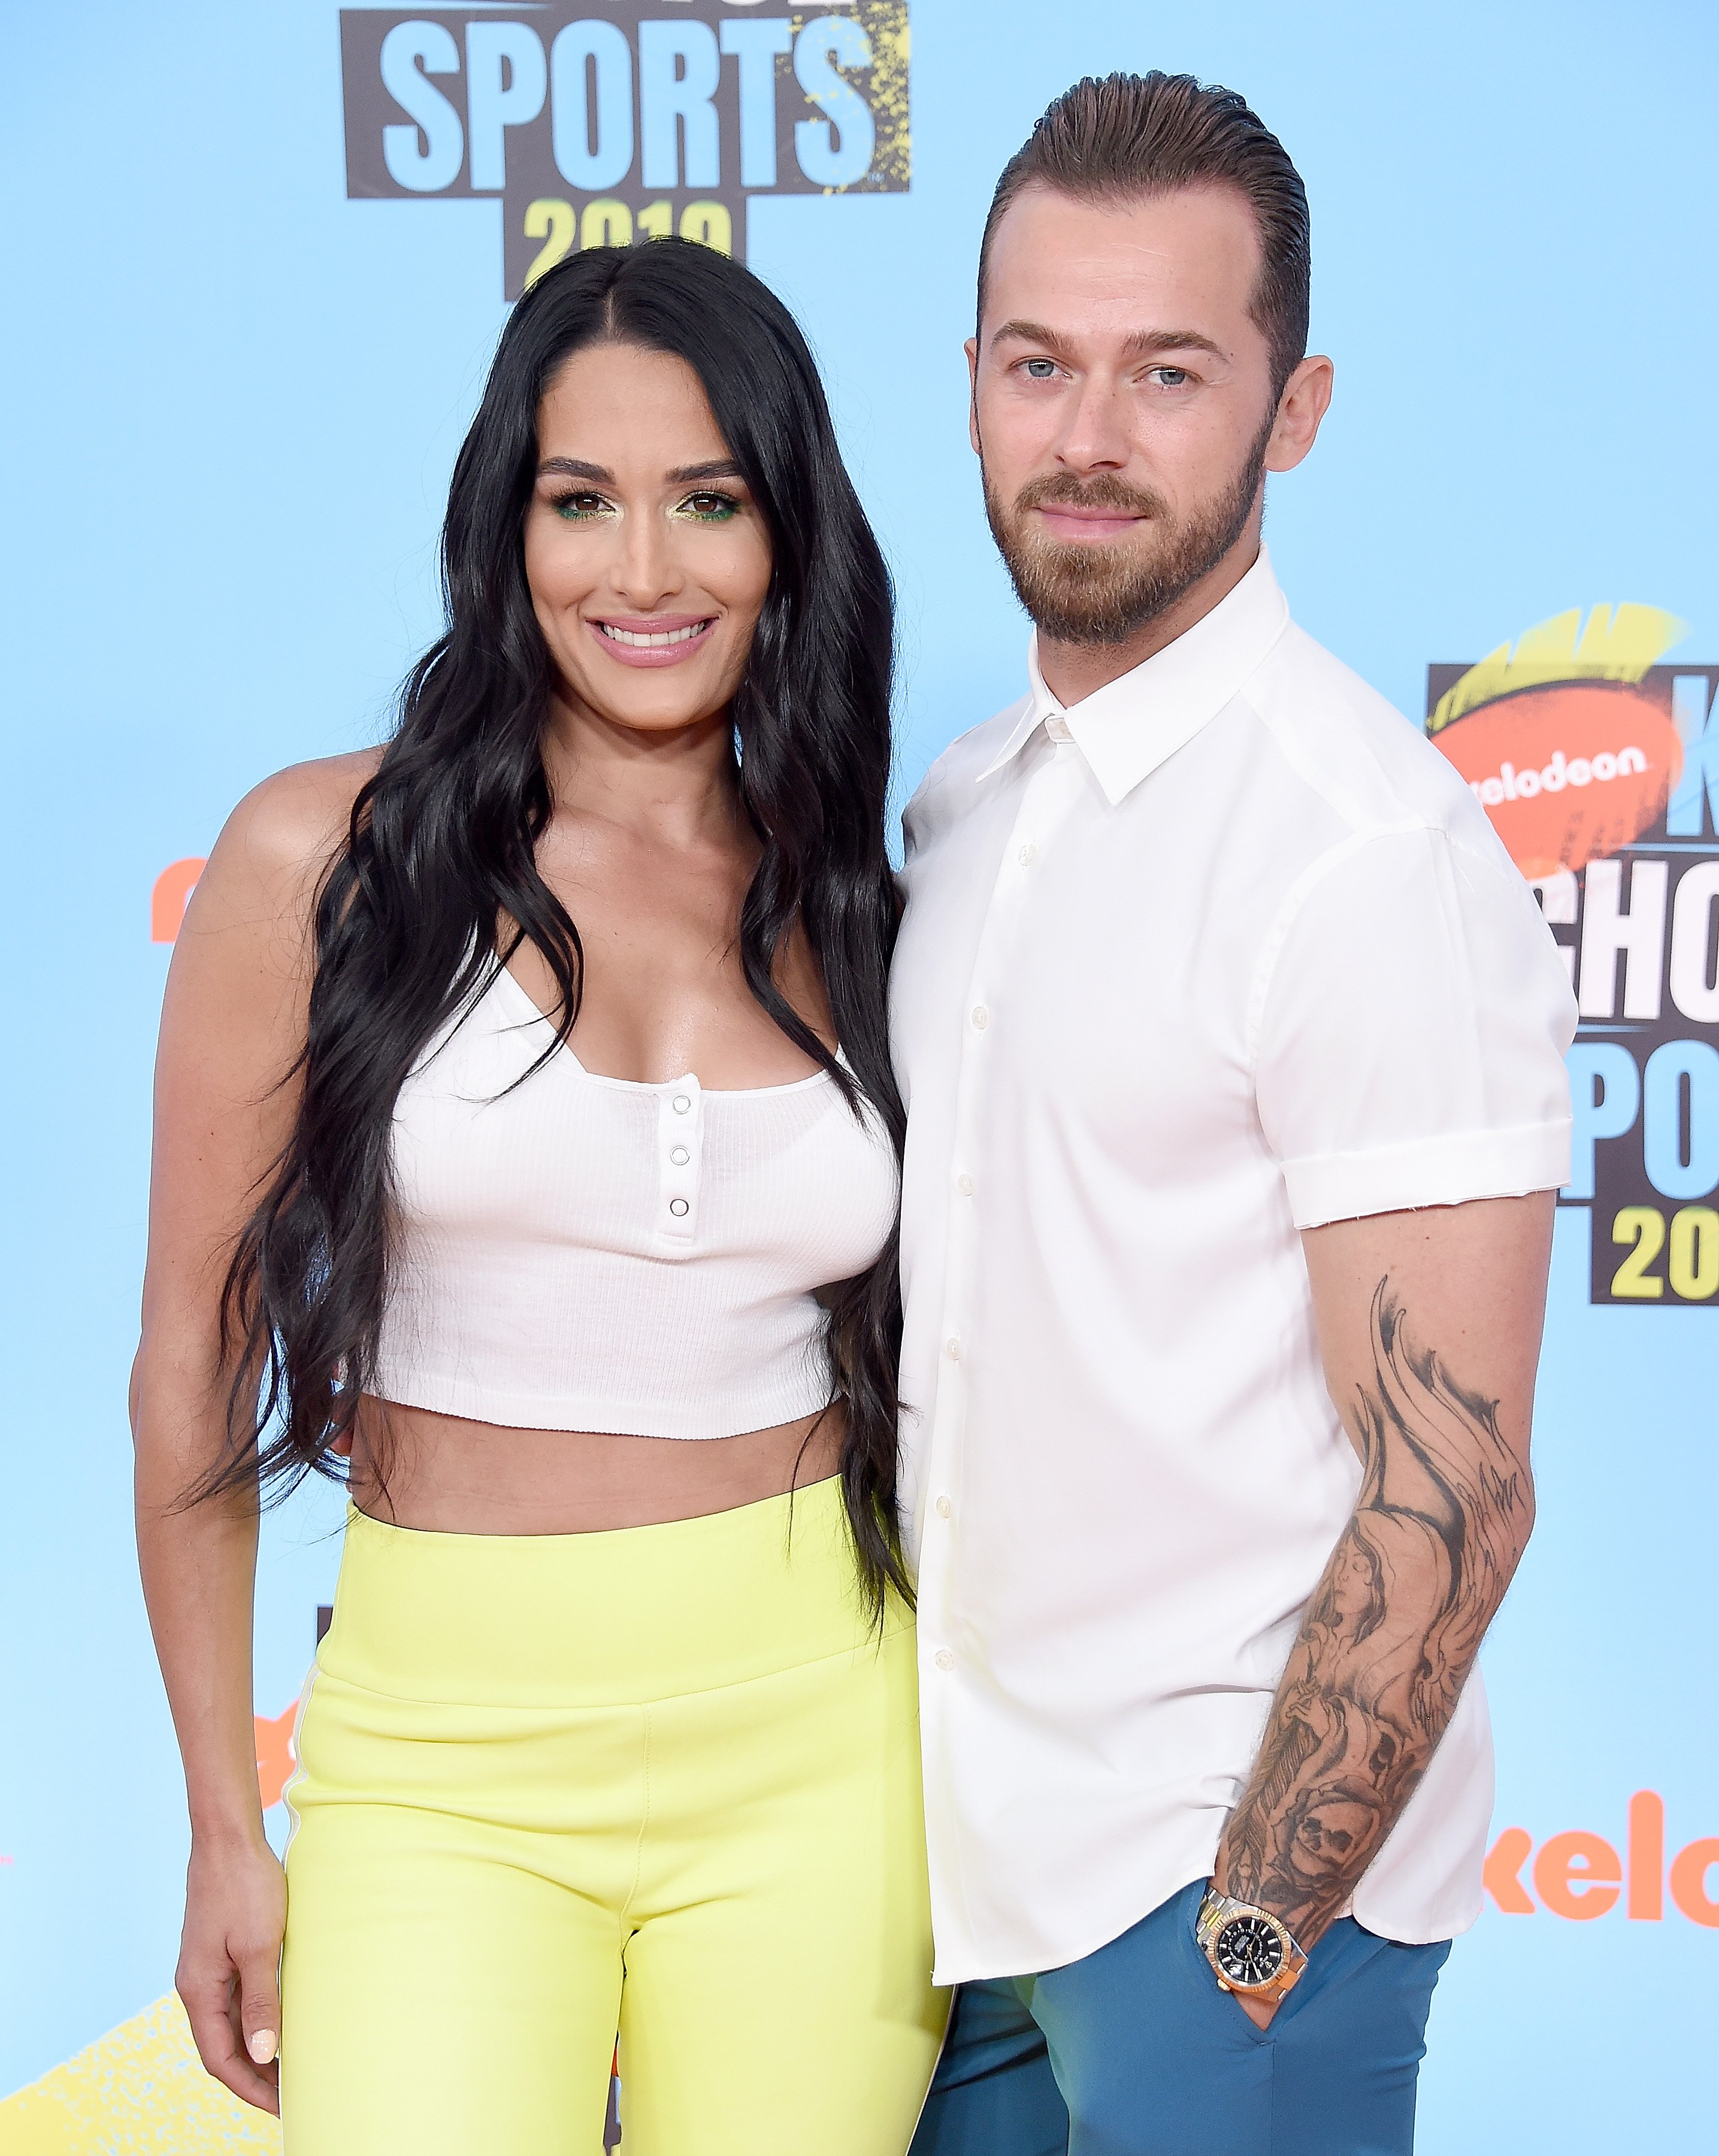 Nikki Bella and Artem Chigvintsev during the 2019 Nickelodeon sports event. | Photo: Getty Images